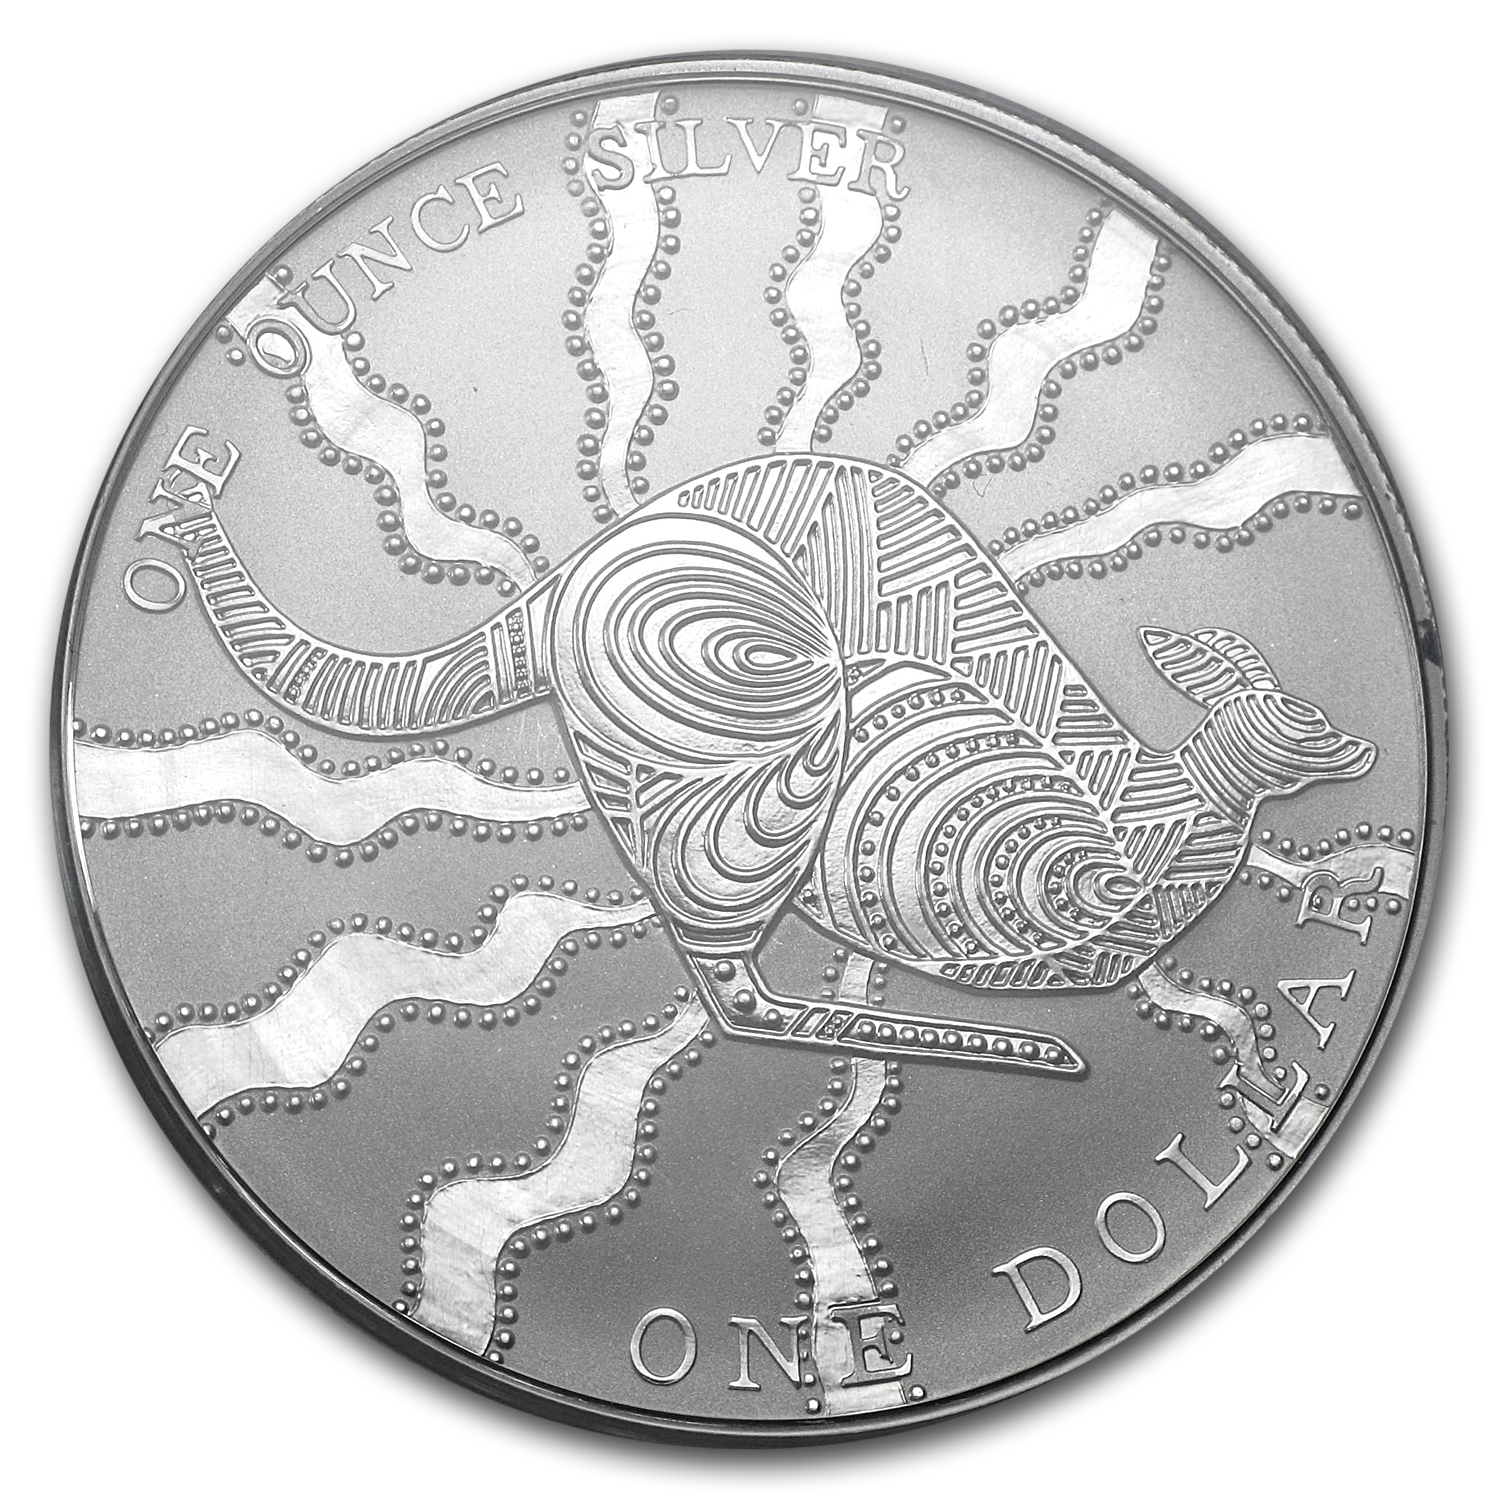 2002 Australia 1 oz Silver Kangaroo (In Display Card)